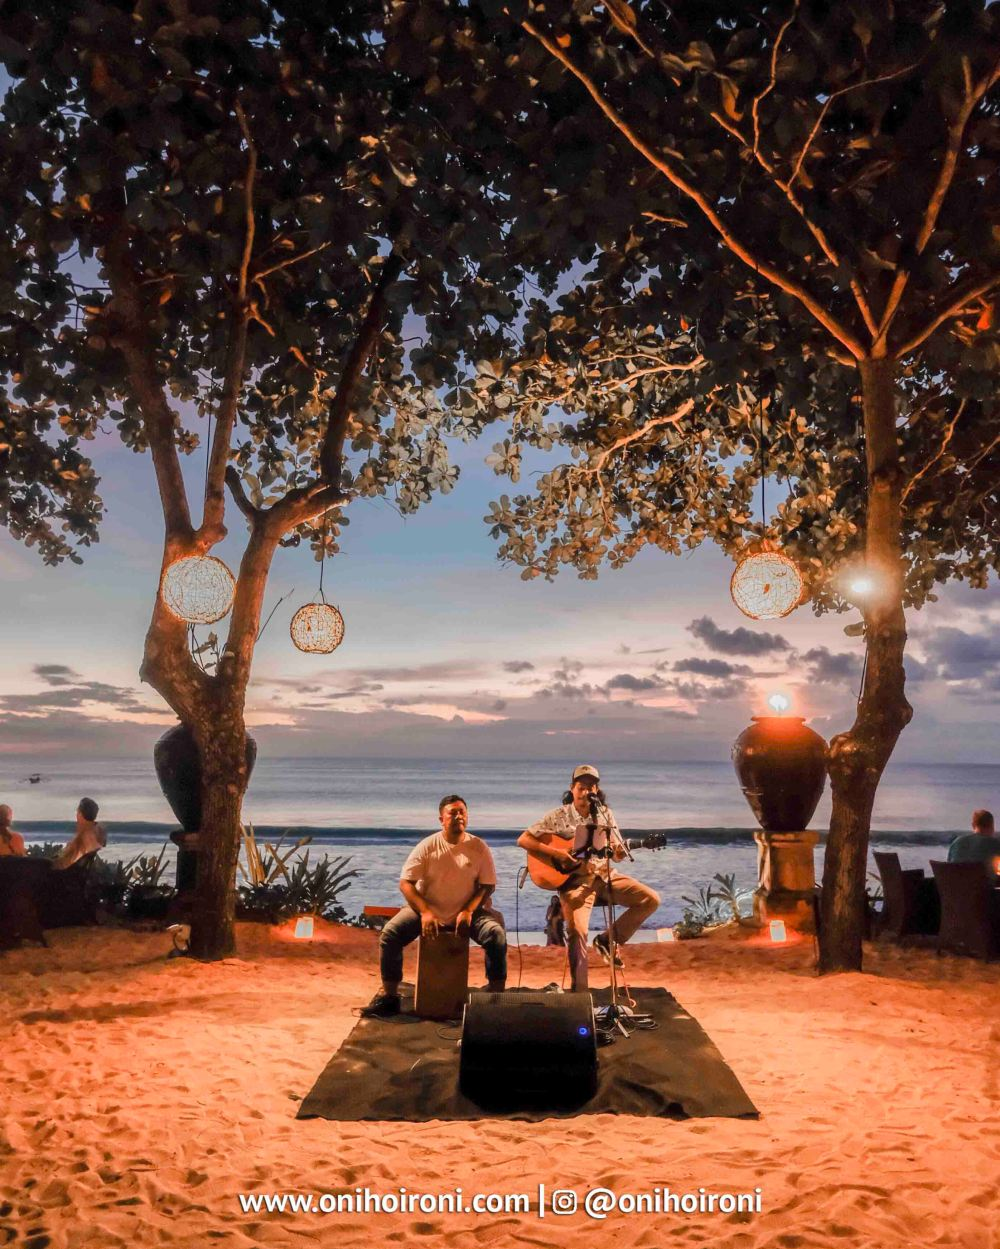 10 Sunset beach bar and grill intercontinental bali resort oni hoironi restaurant di jimbaran copy